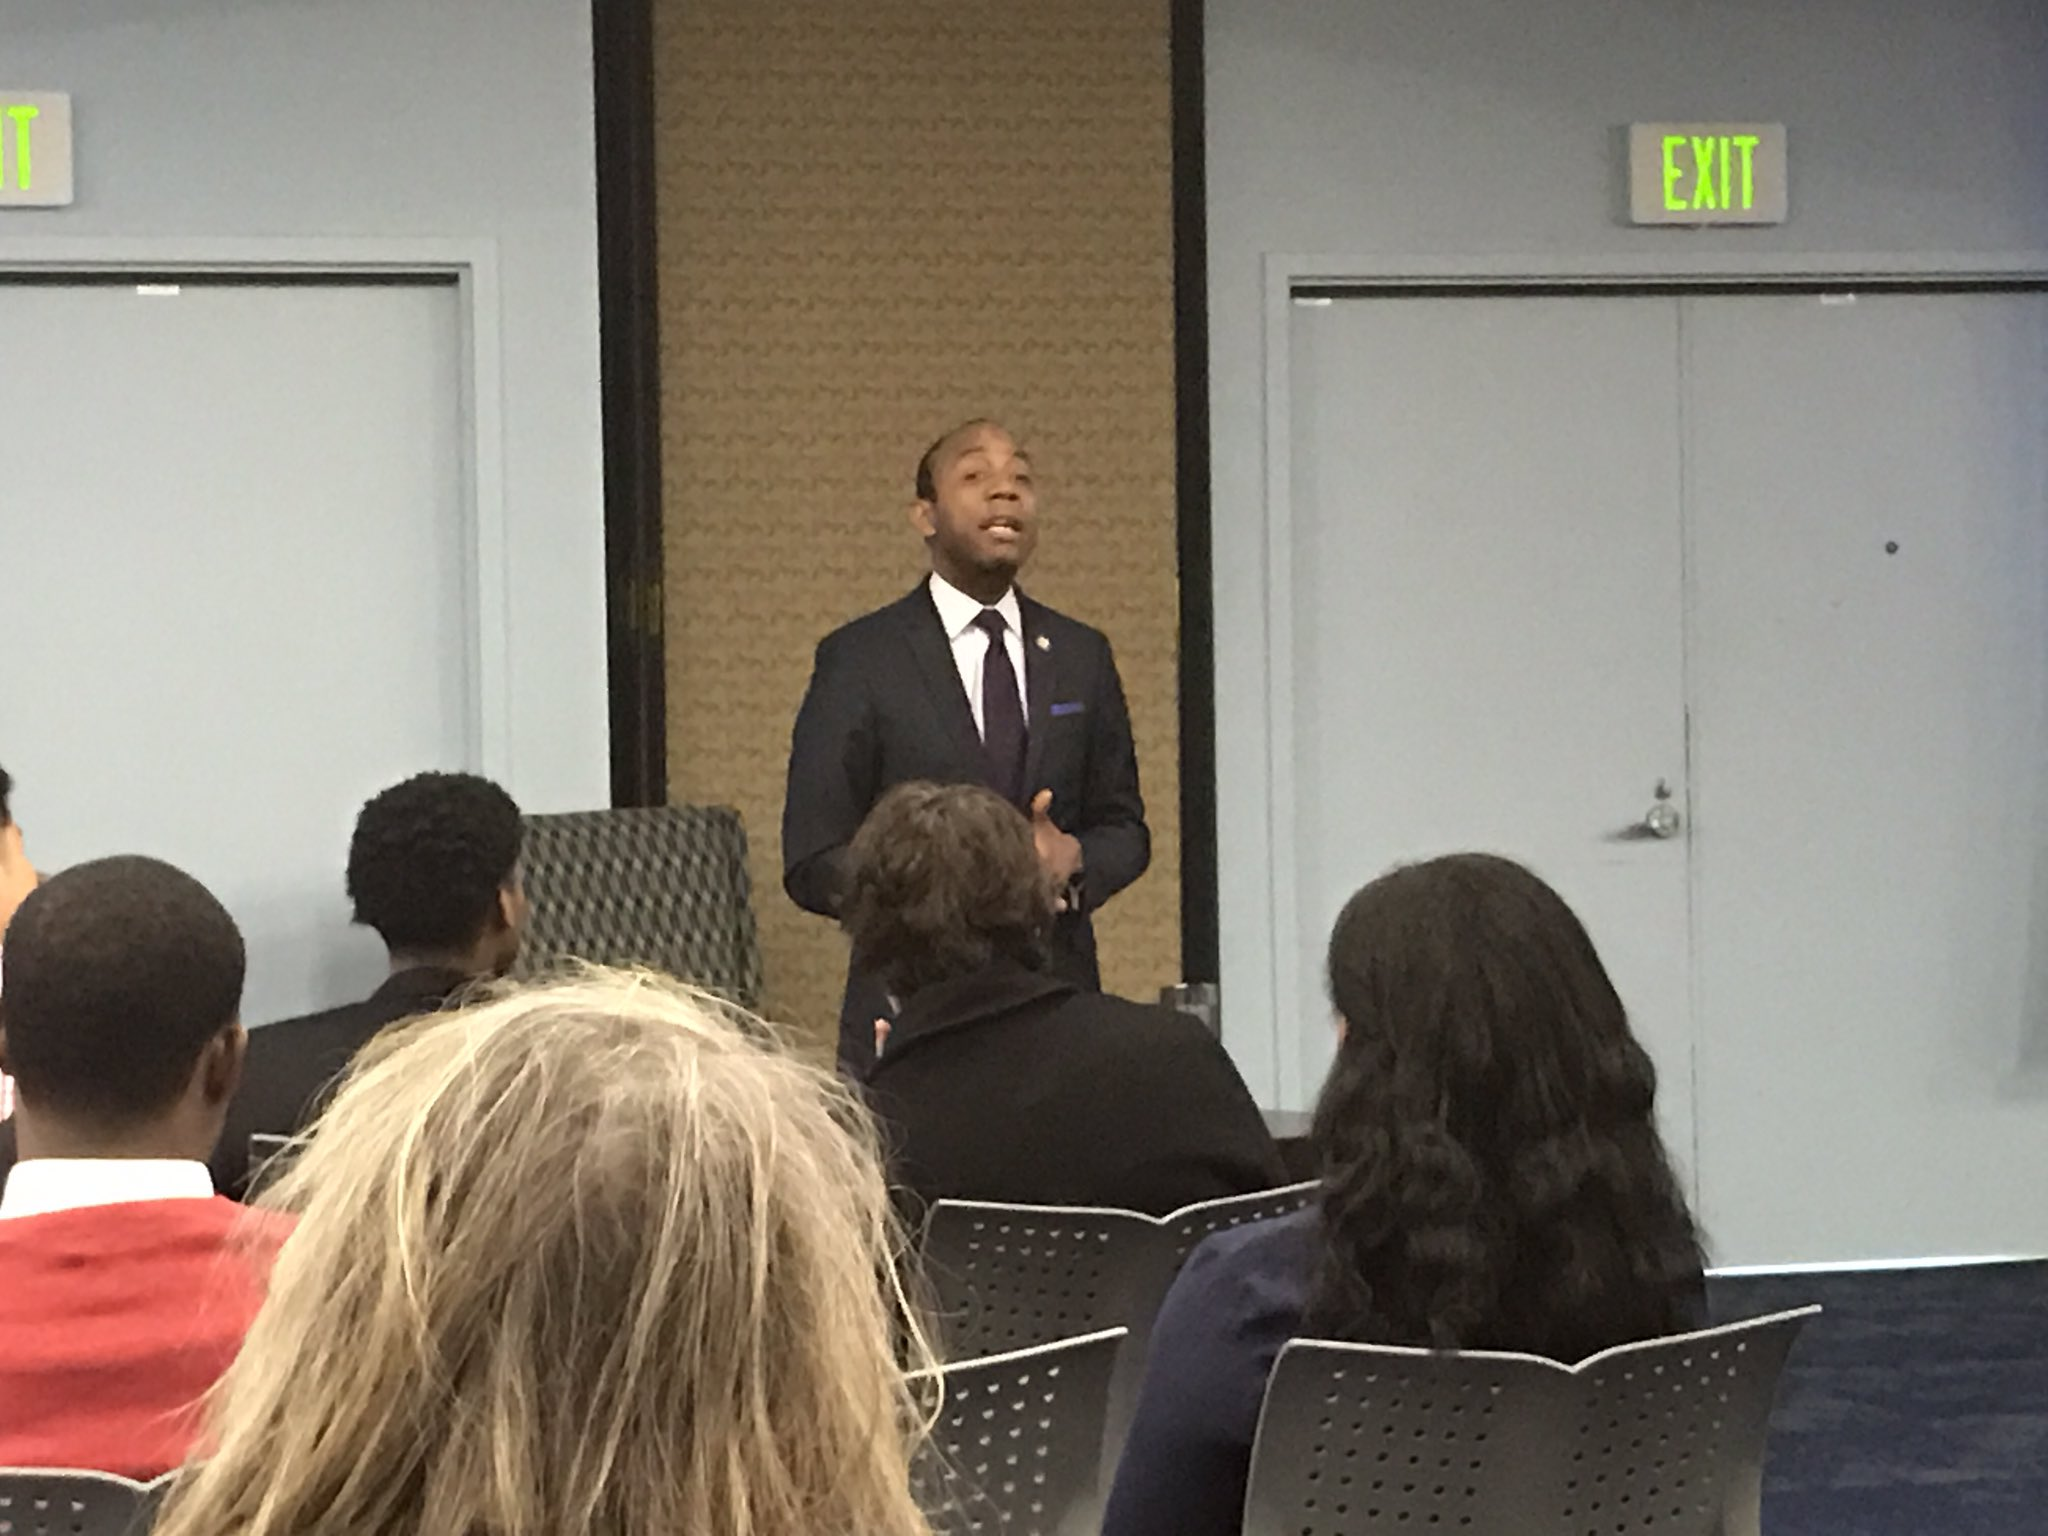 @CornellWBrooks discussing how to overcome struggles, law school, and perseverance. #USIMLK https://t.co/OSMewst9mO